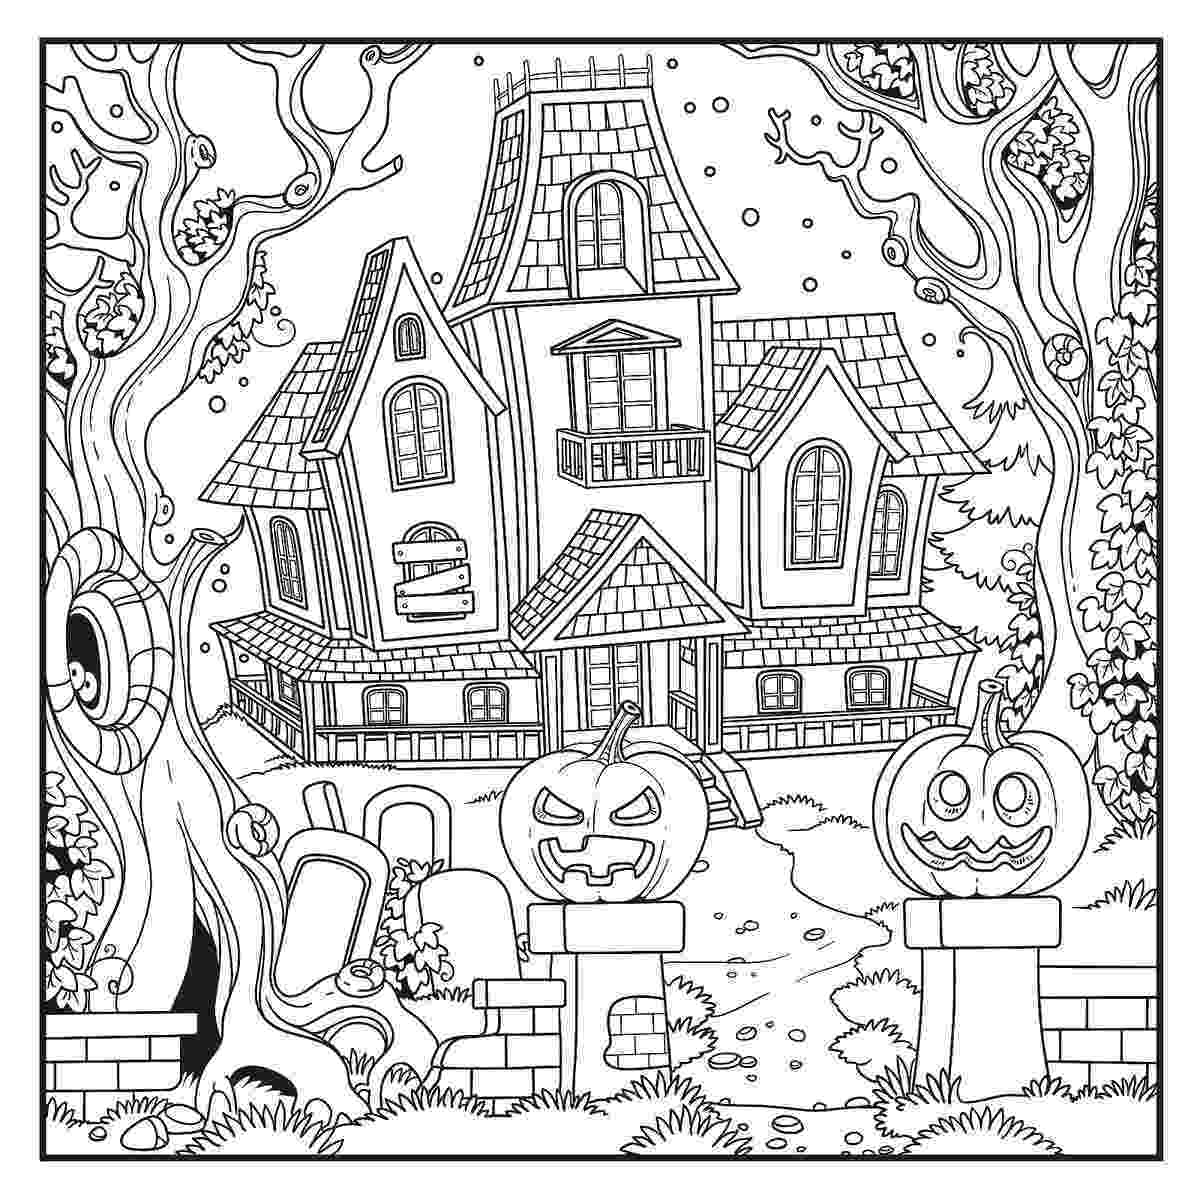 colouring pages for halloween free printable halloween coloring pages to download and print for free for colouring free printable pages halloween